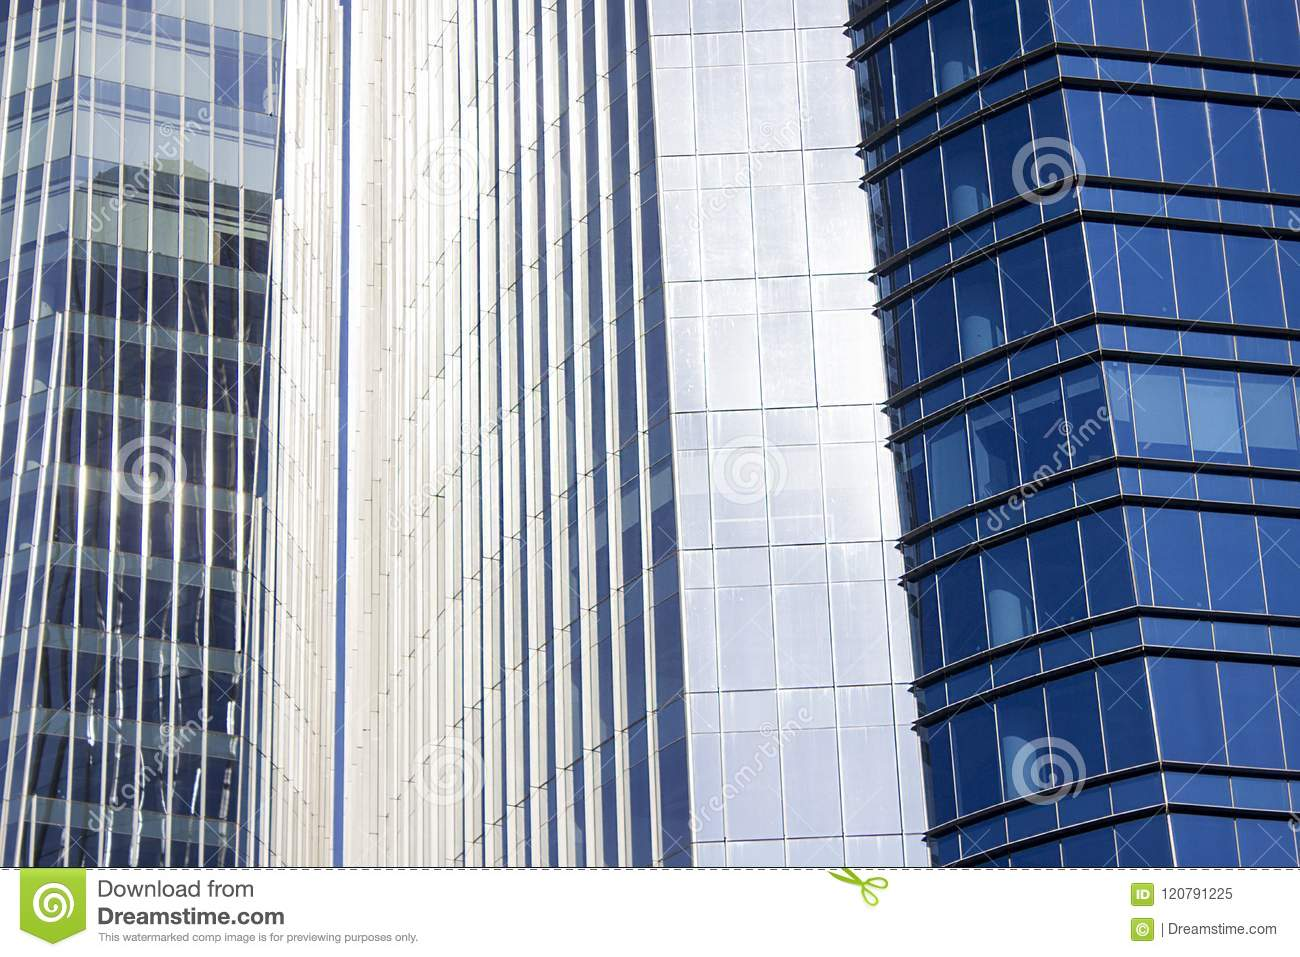 Close shot of a pair of twins corporate blue office buildings with a striped design.